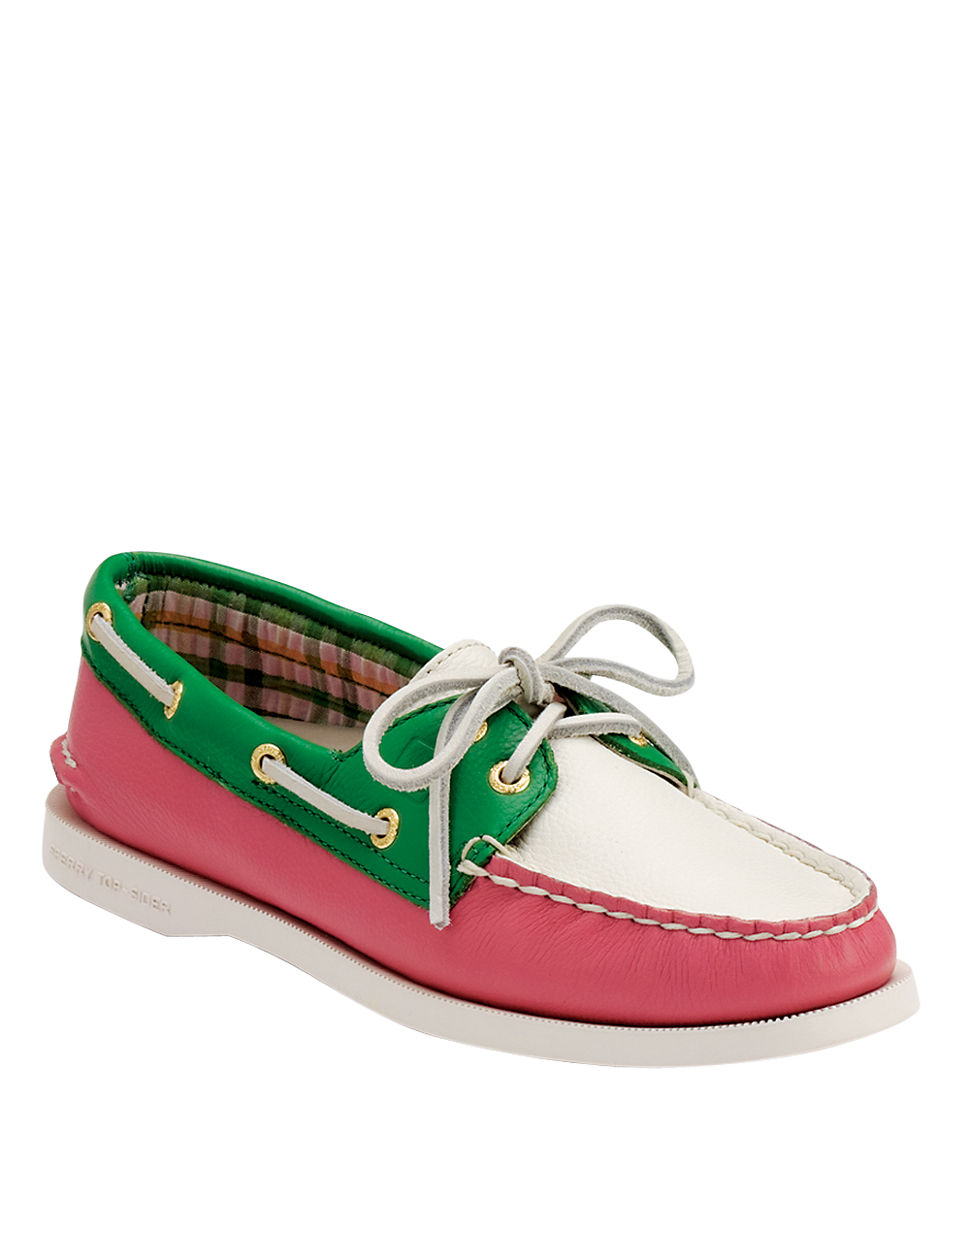 sperry top sider authentic original leather boat shoes in